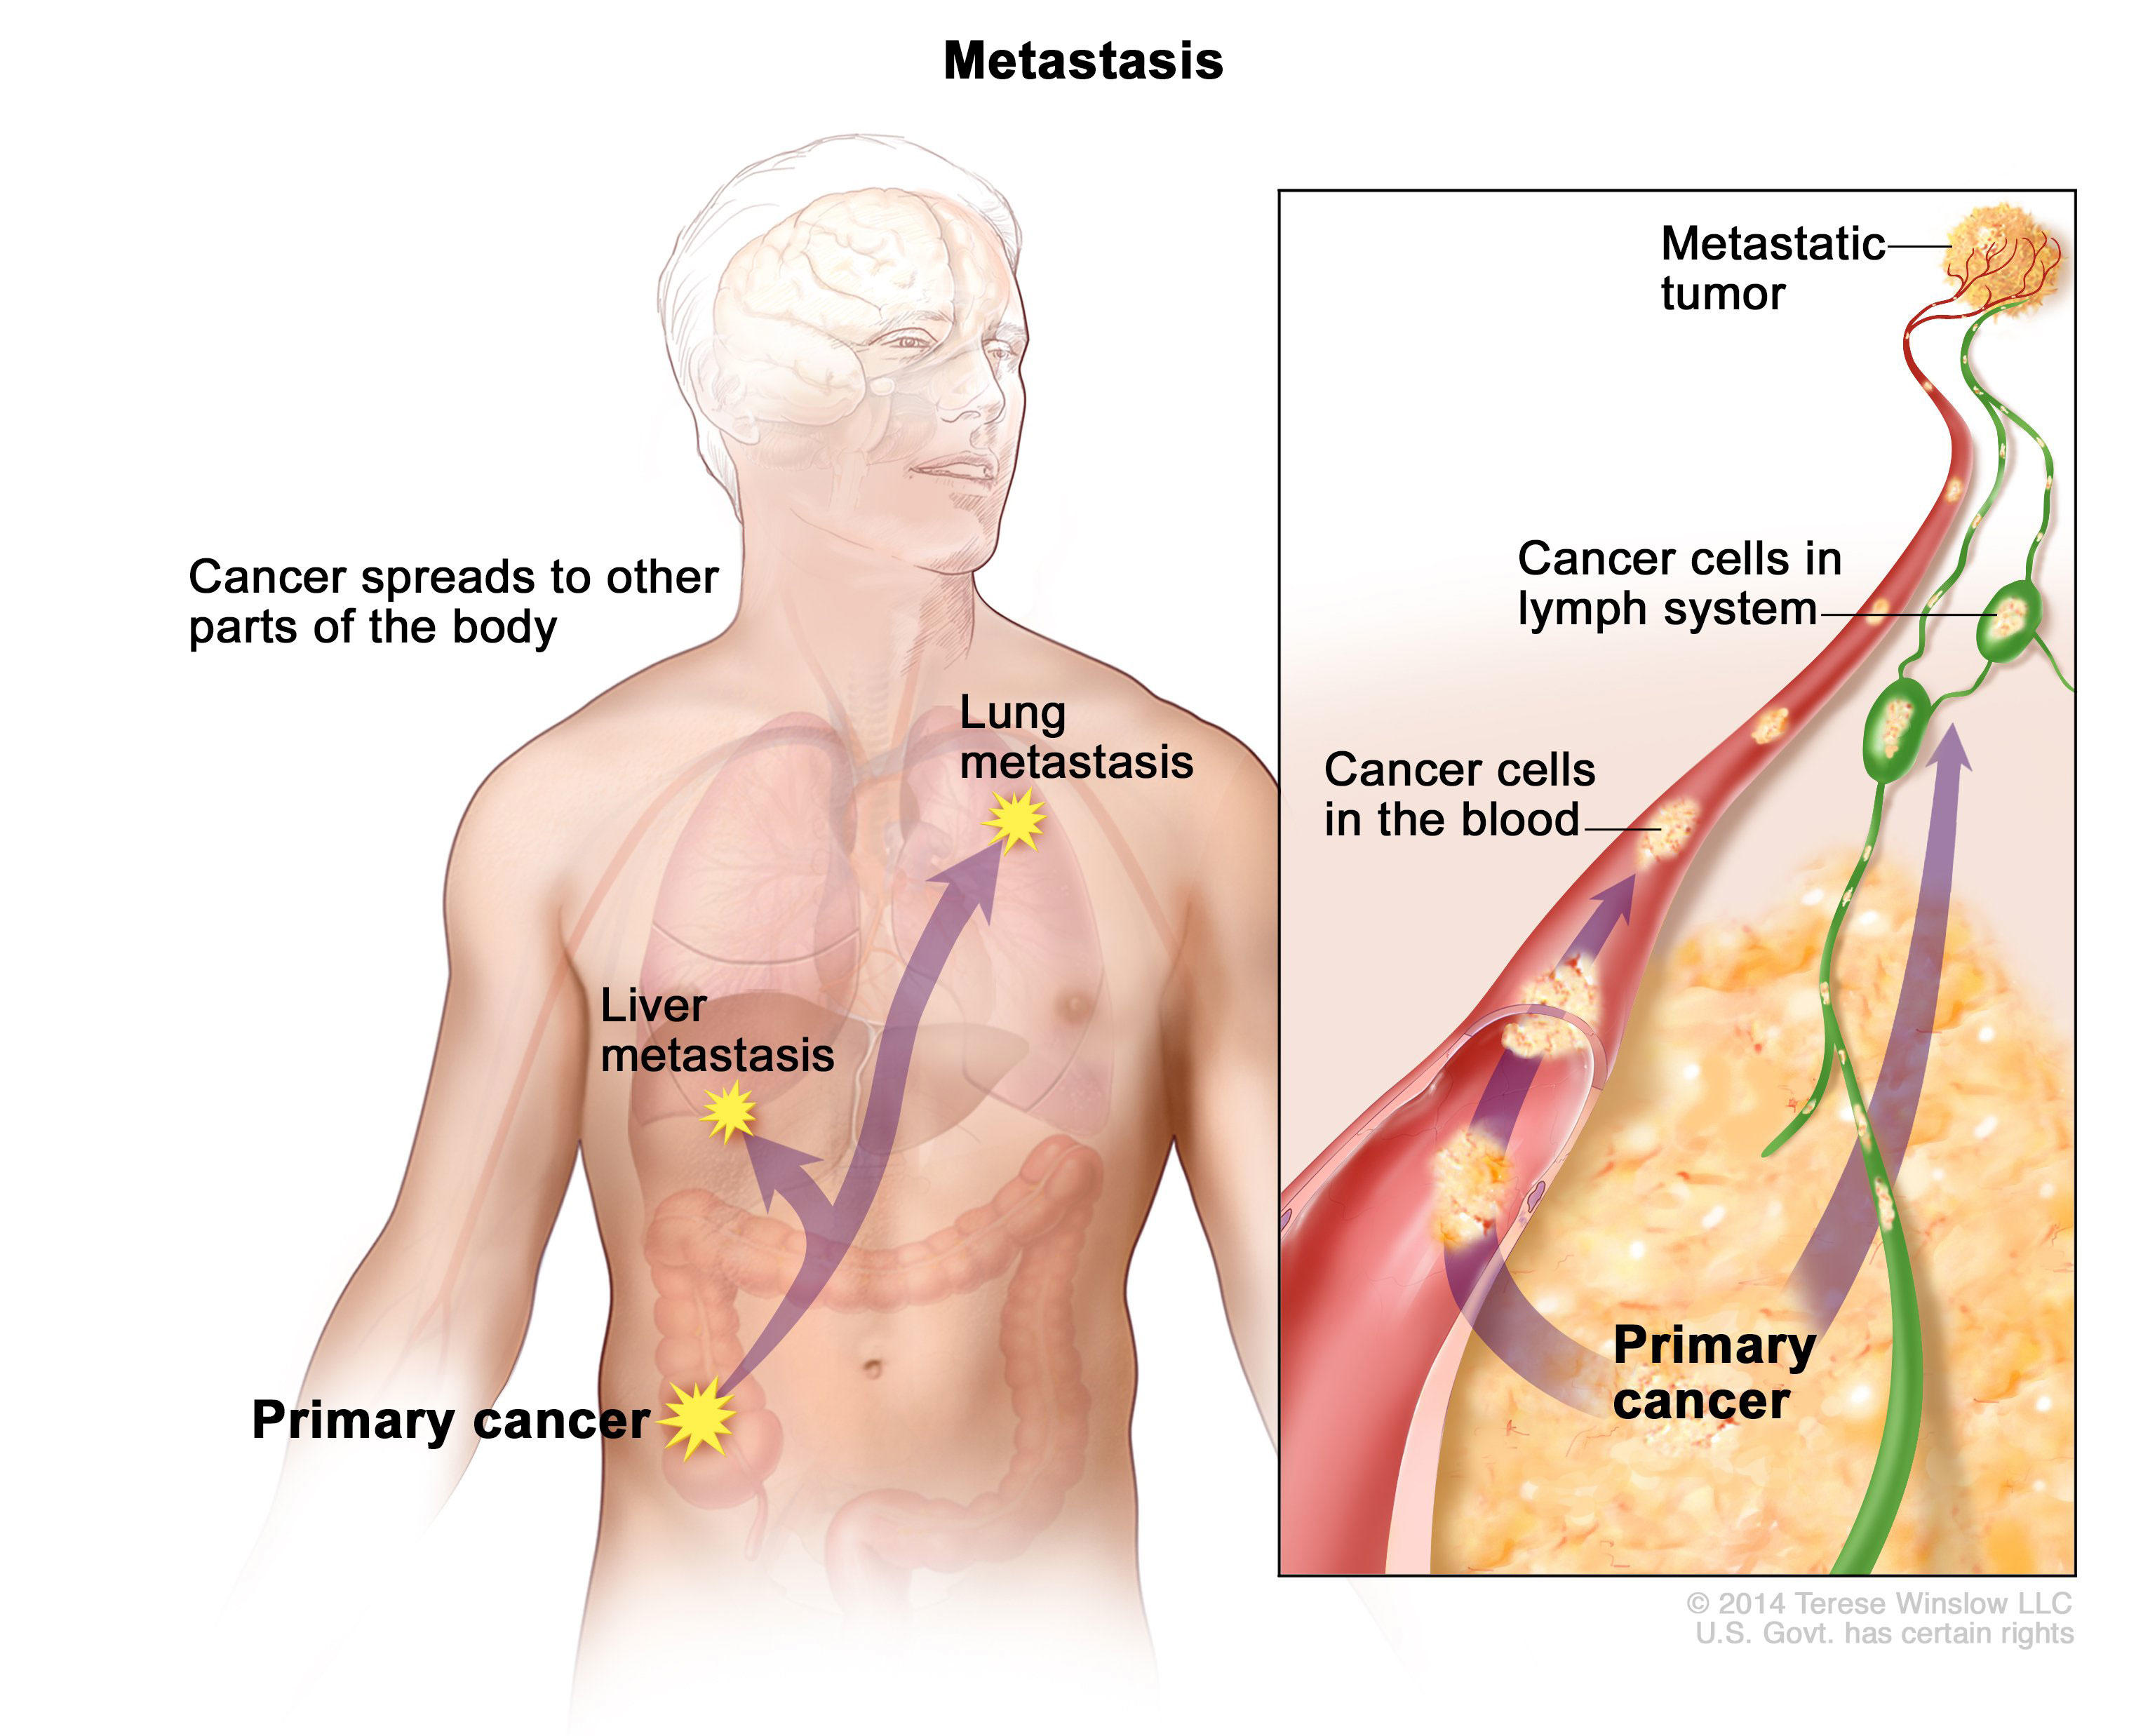 metastatic cancer can be cured